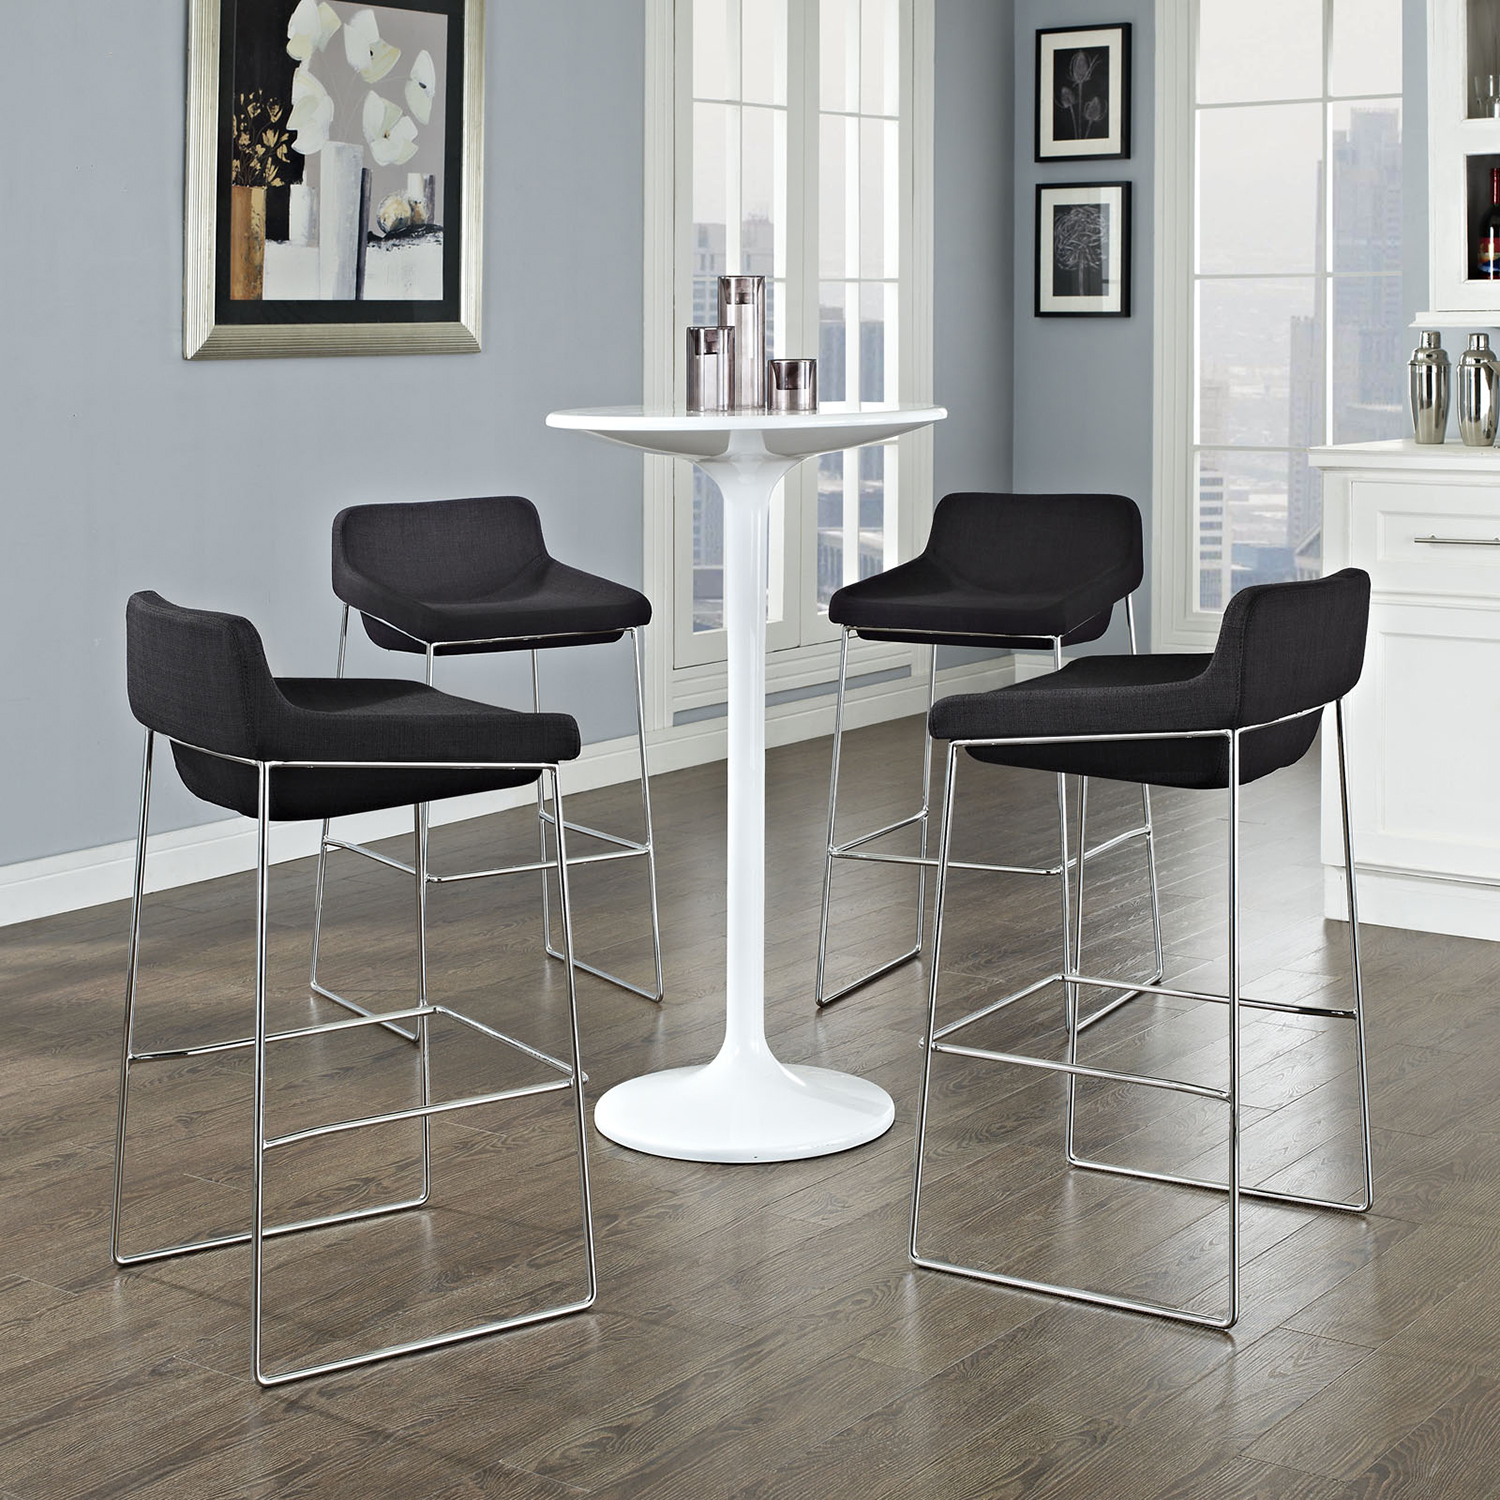 Garner Bar Stool - Metal Legs, Black (Set of 4) - EEI-1365-BLK